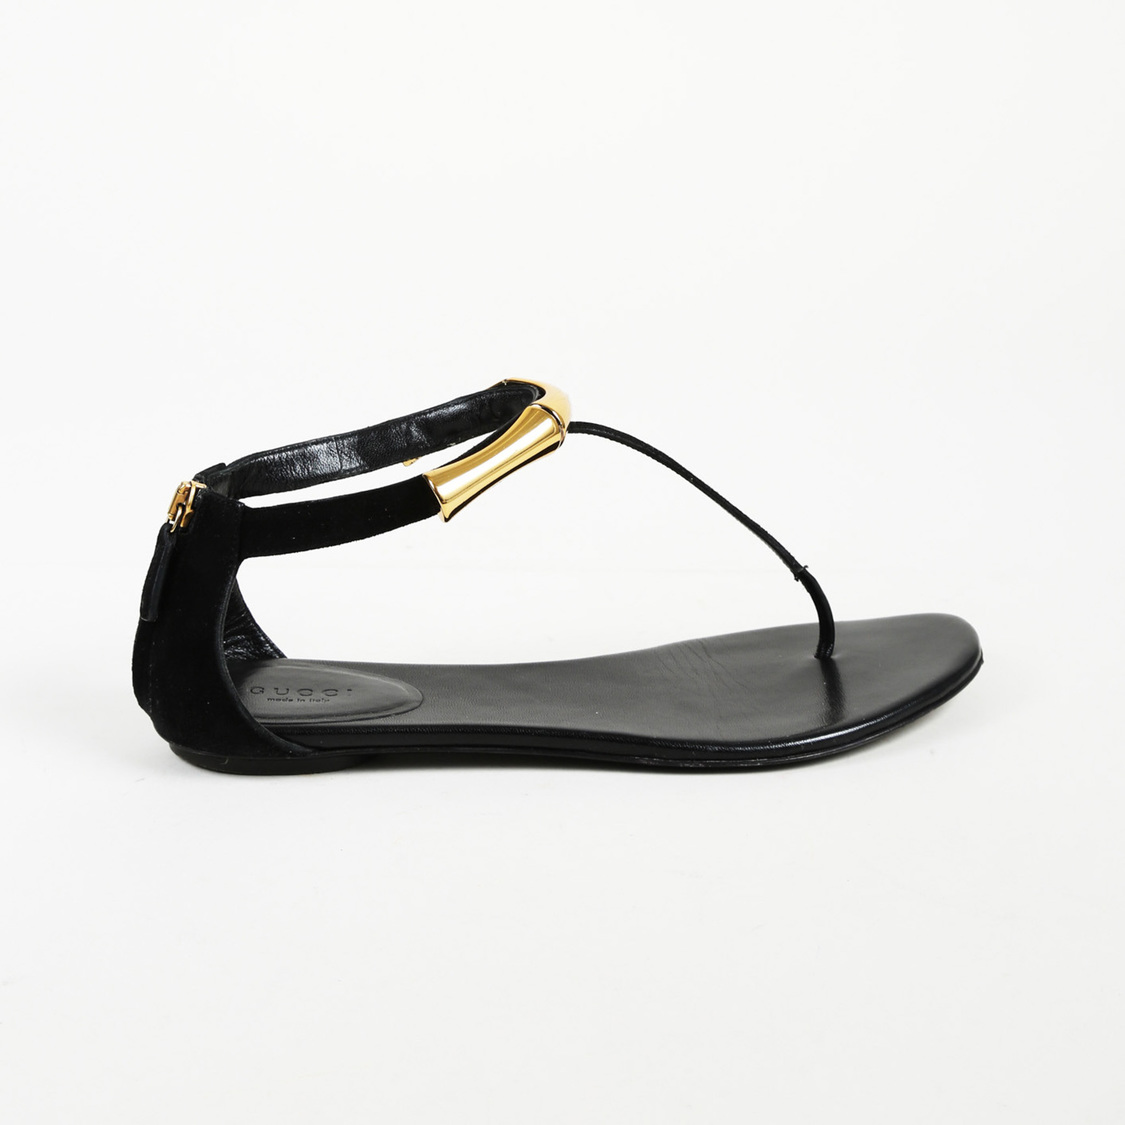 9c448ae9eead Details about Gucci Suede Bamboo Thong Sandals SZ 38